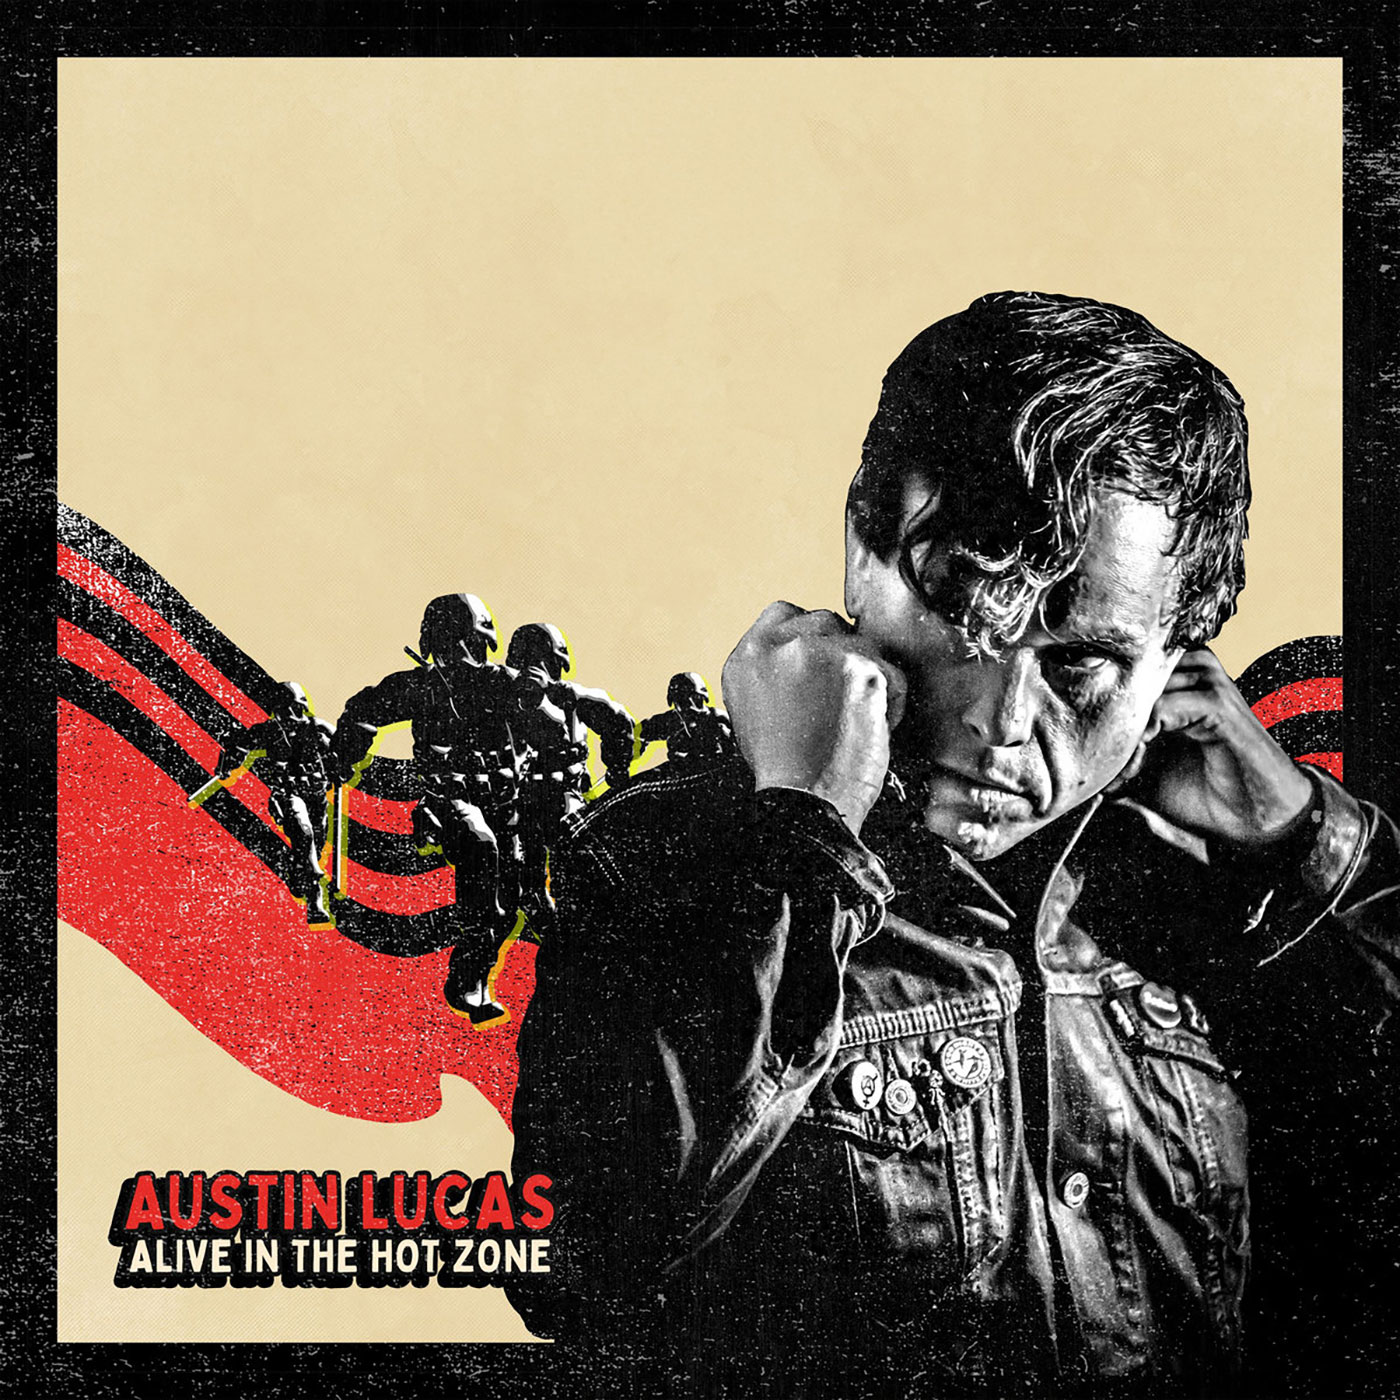 Austin Lucas - Alive In The Hot Zone CD - Sabotage Records / Flight 13 Records